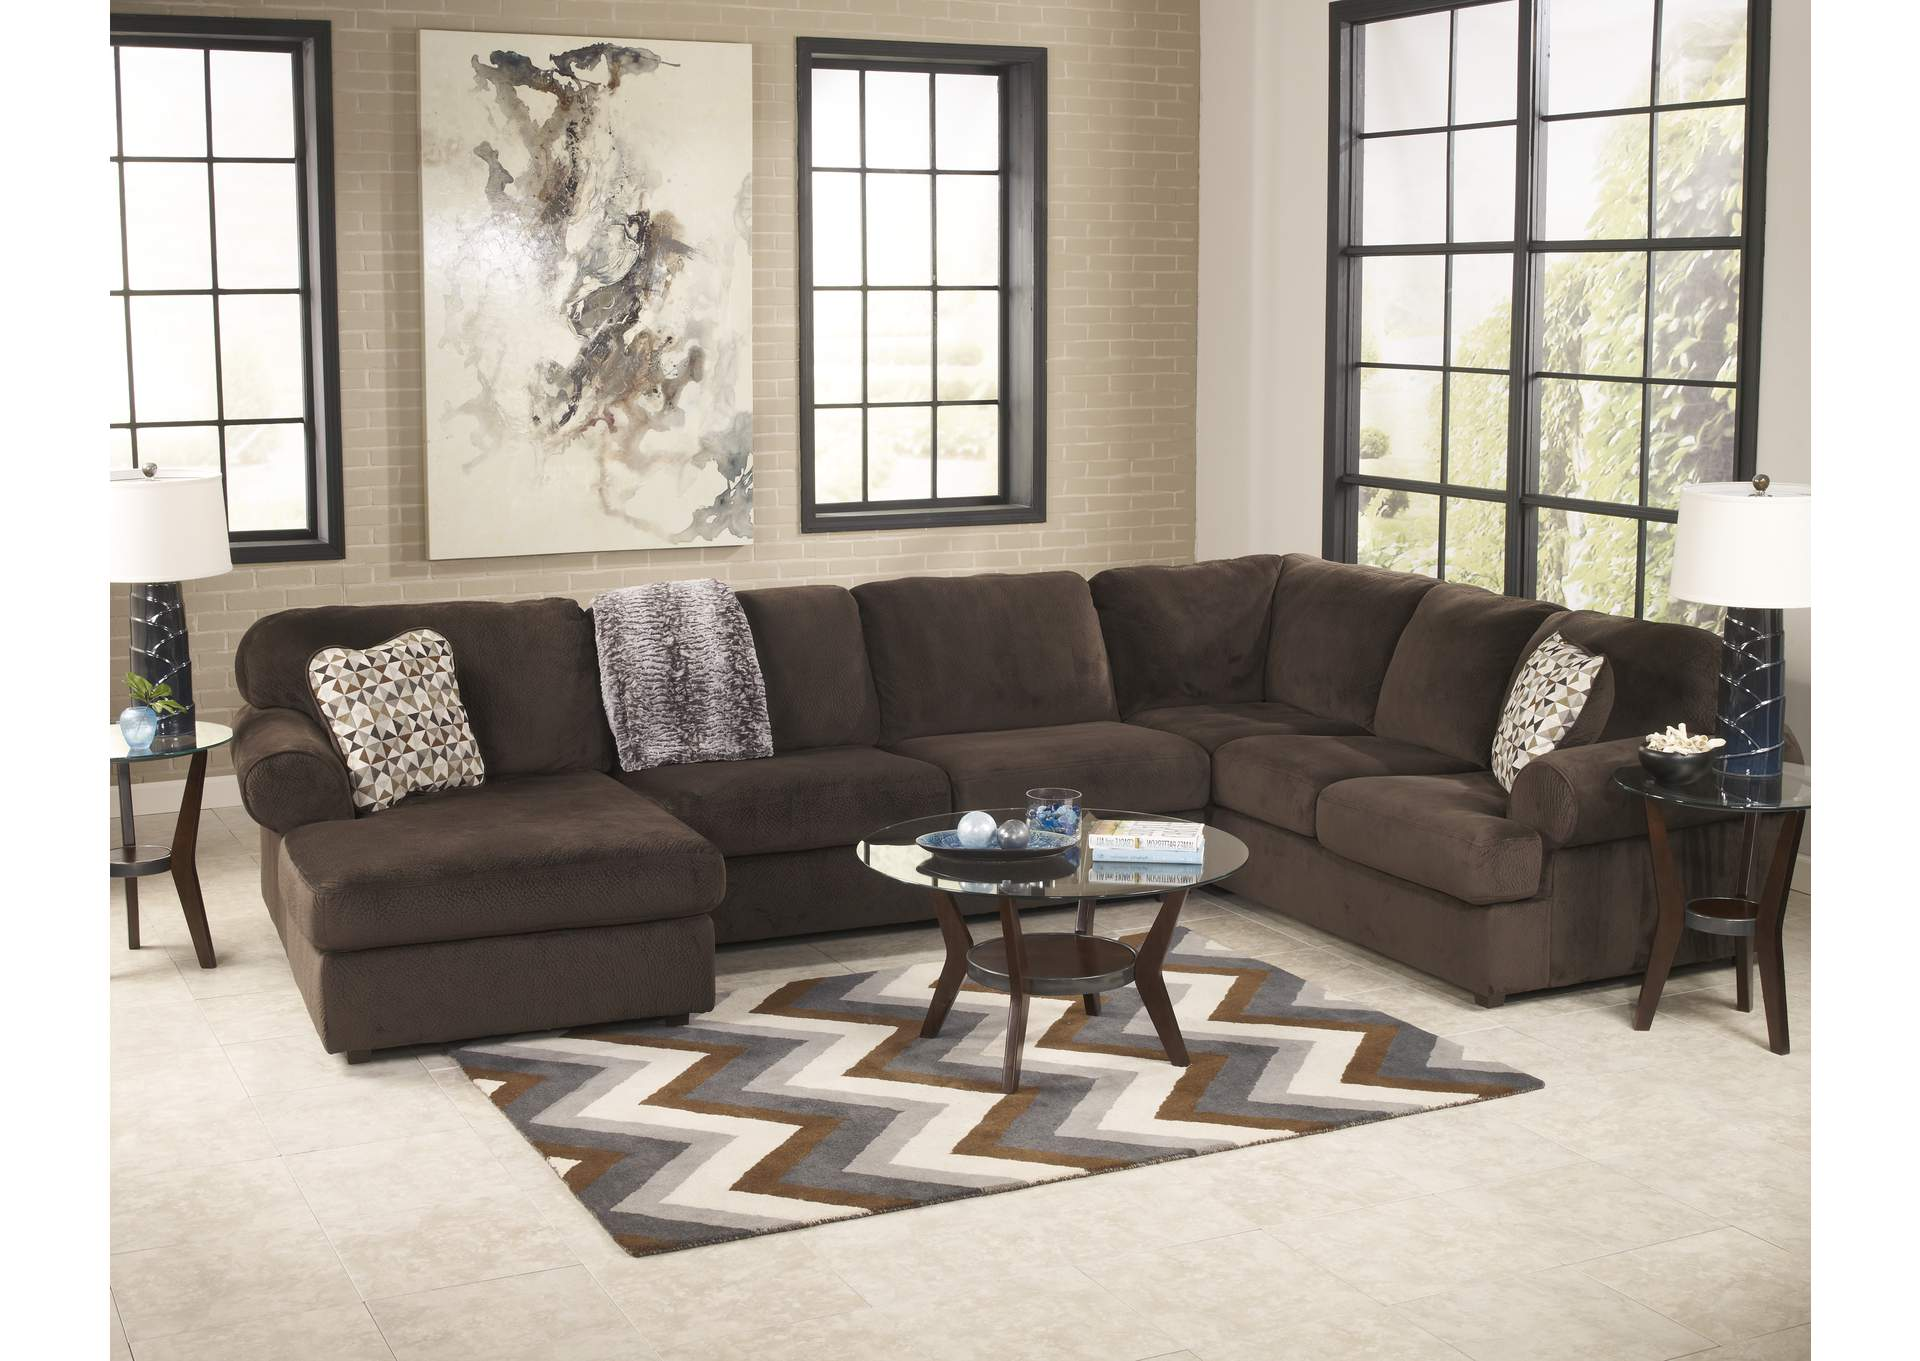 Jessa Place Chocolate Left Facing Chaise Sectional,Signature Design By Ashley